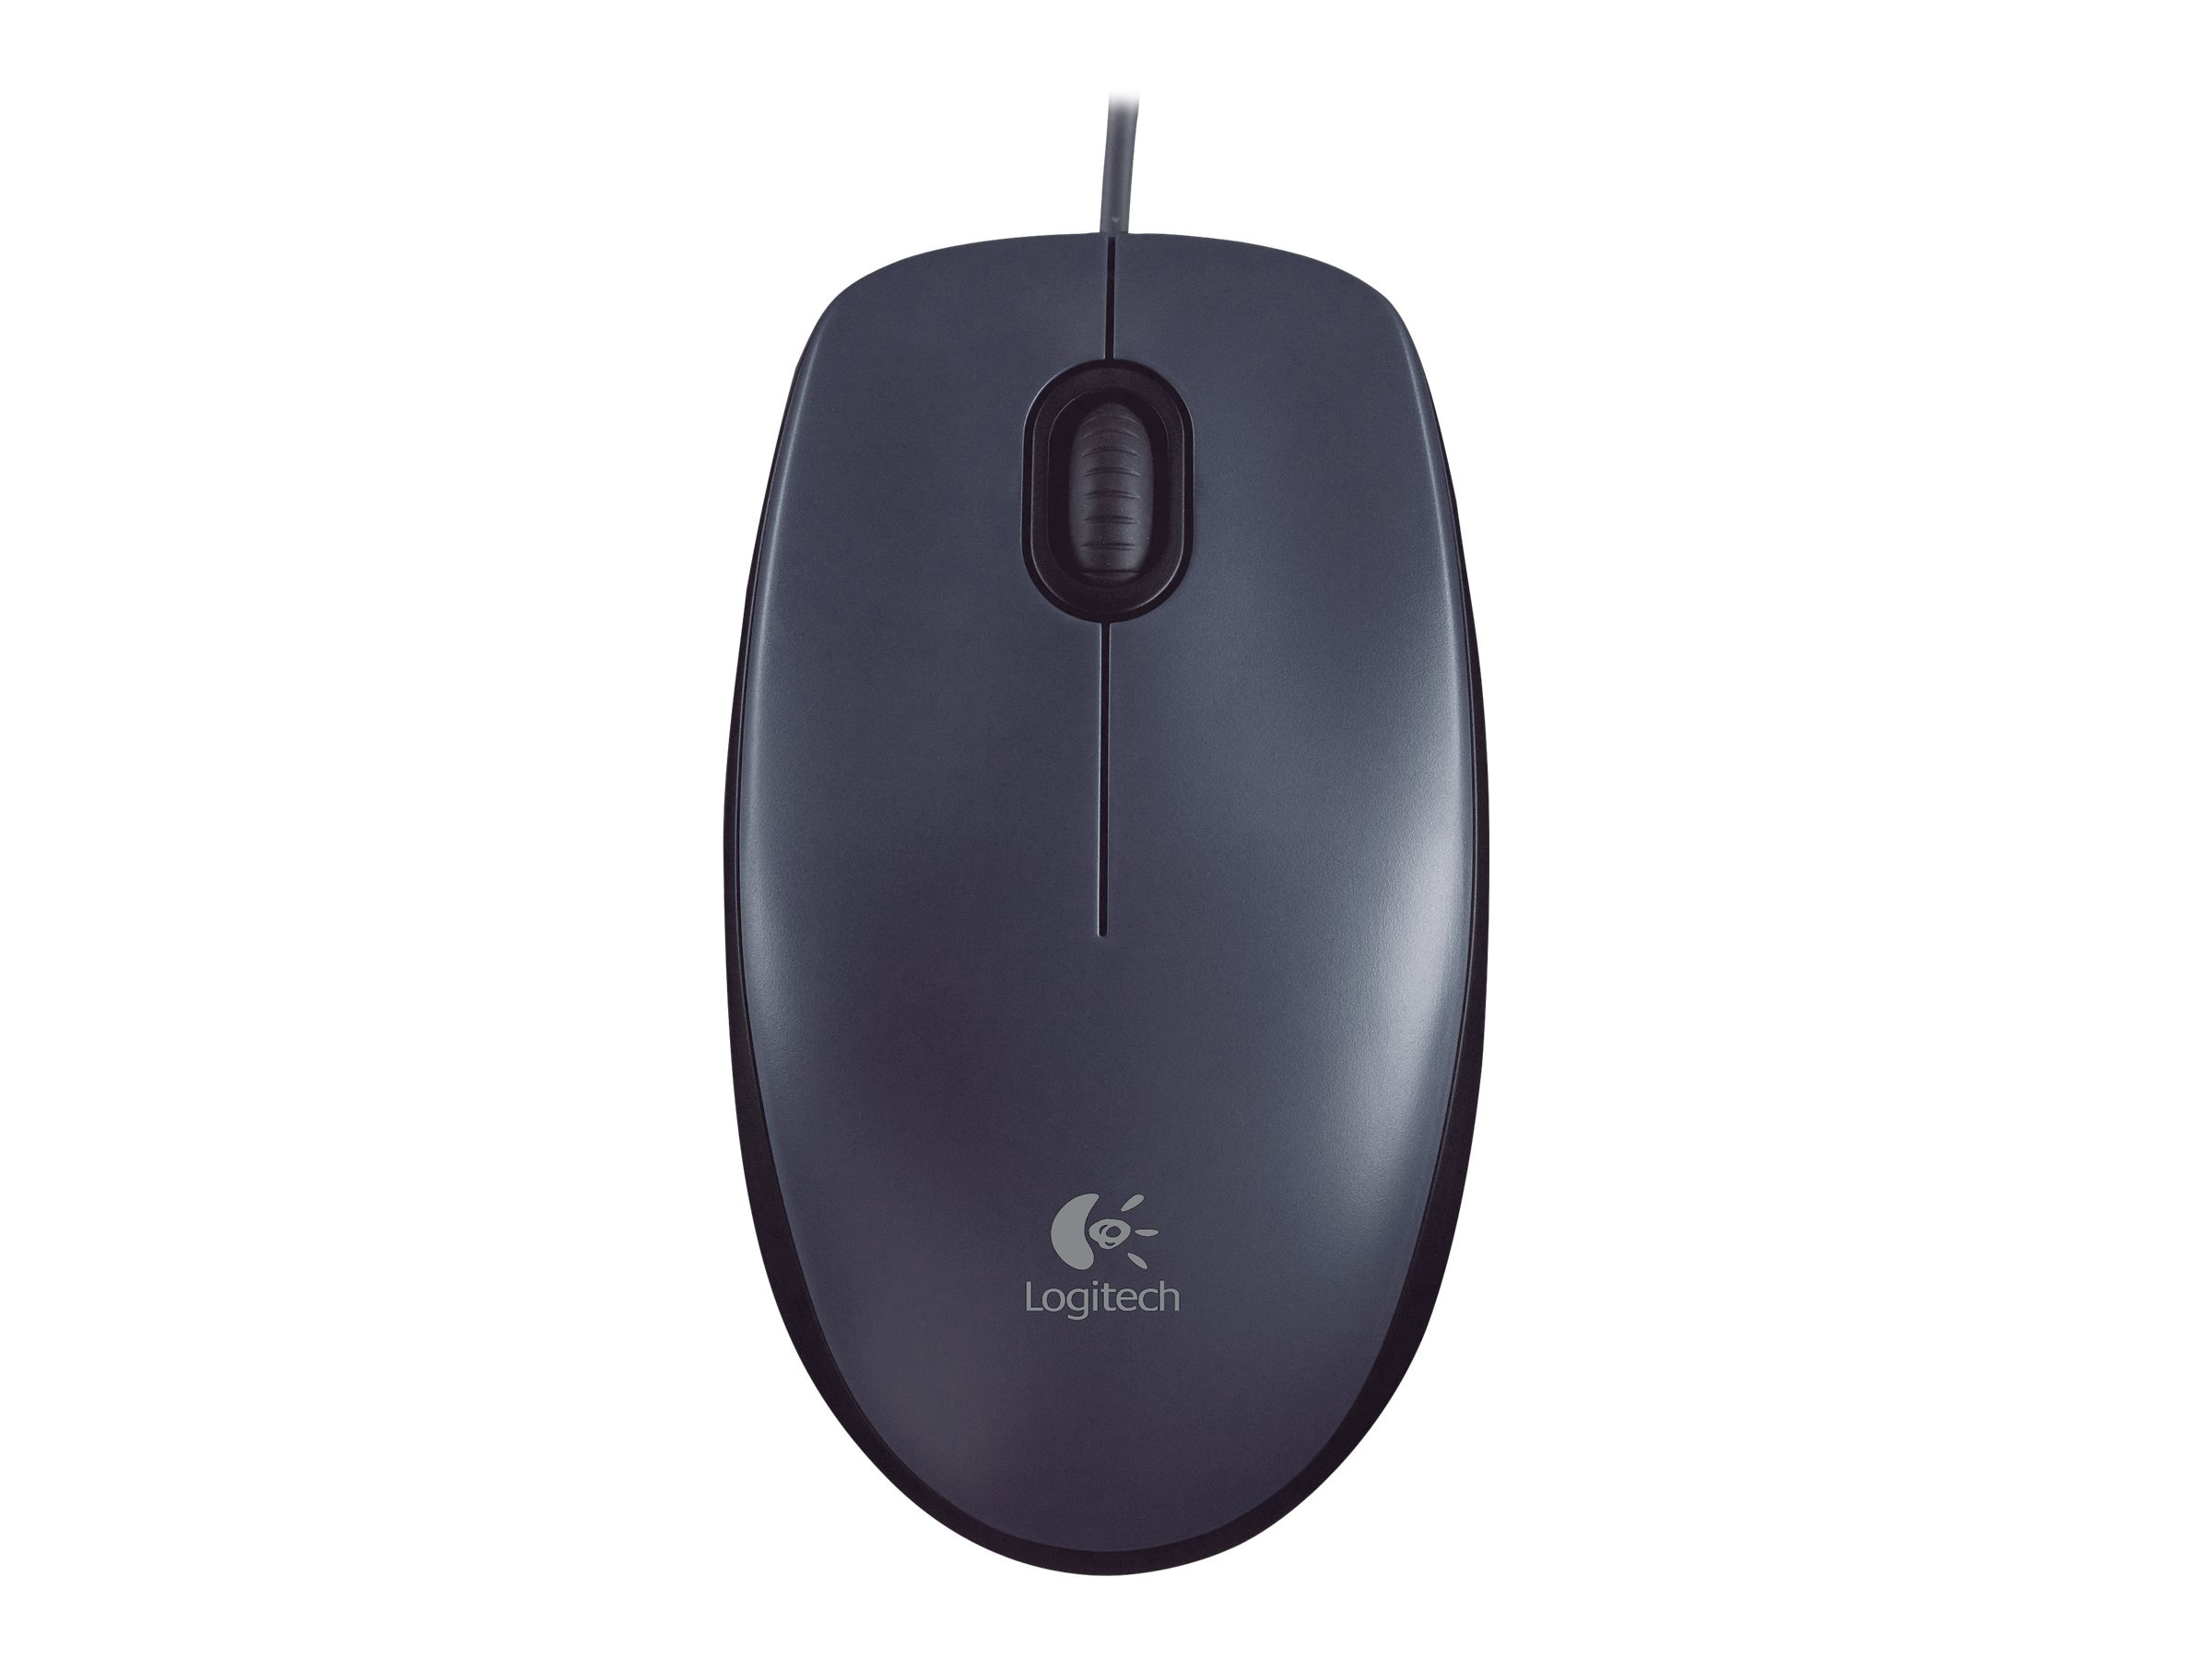 Logitech M100 USB Optical Mouse, Black